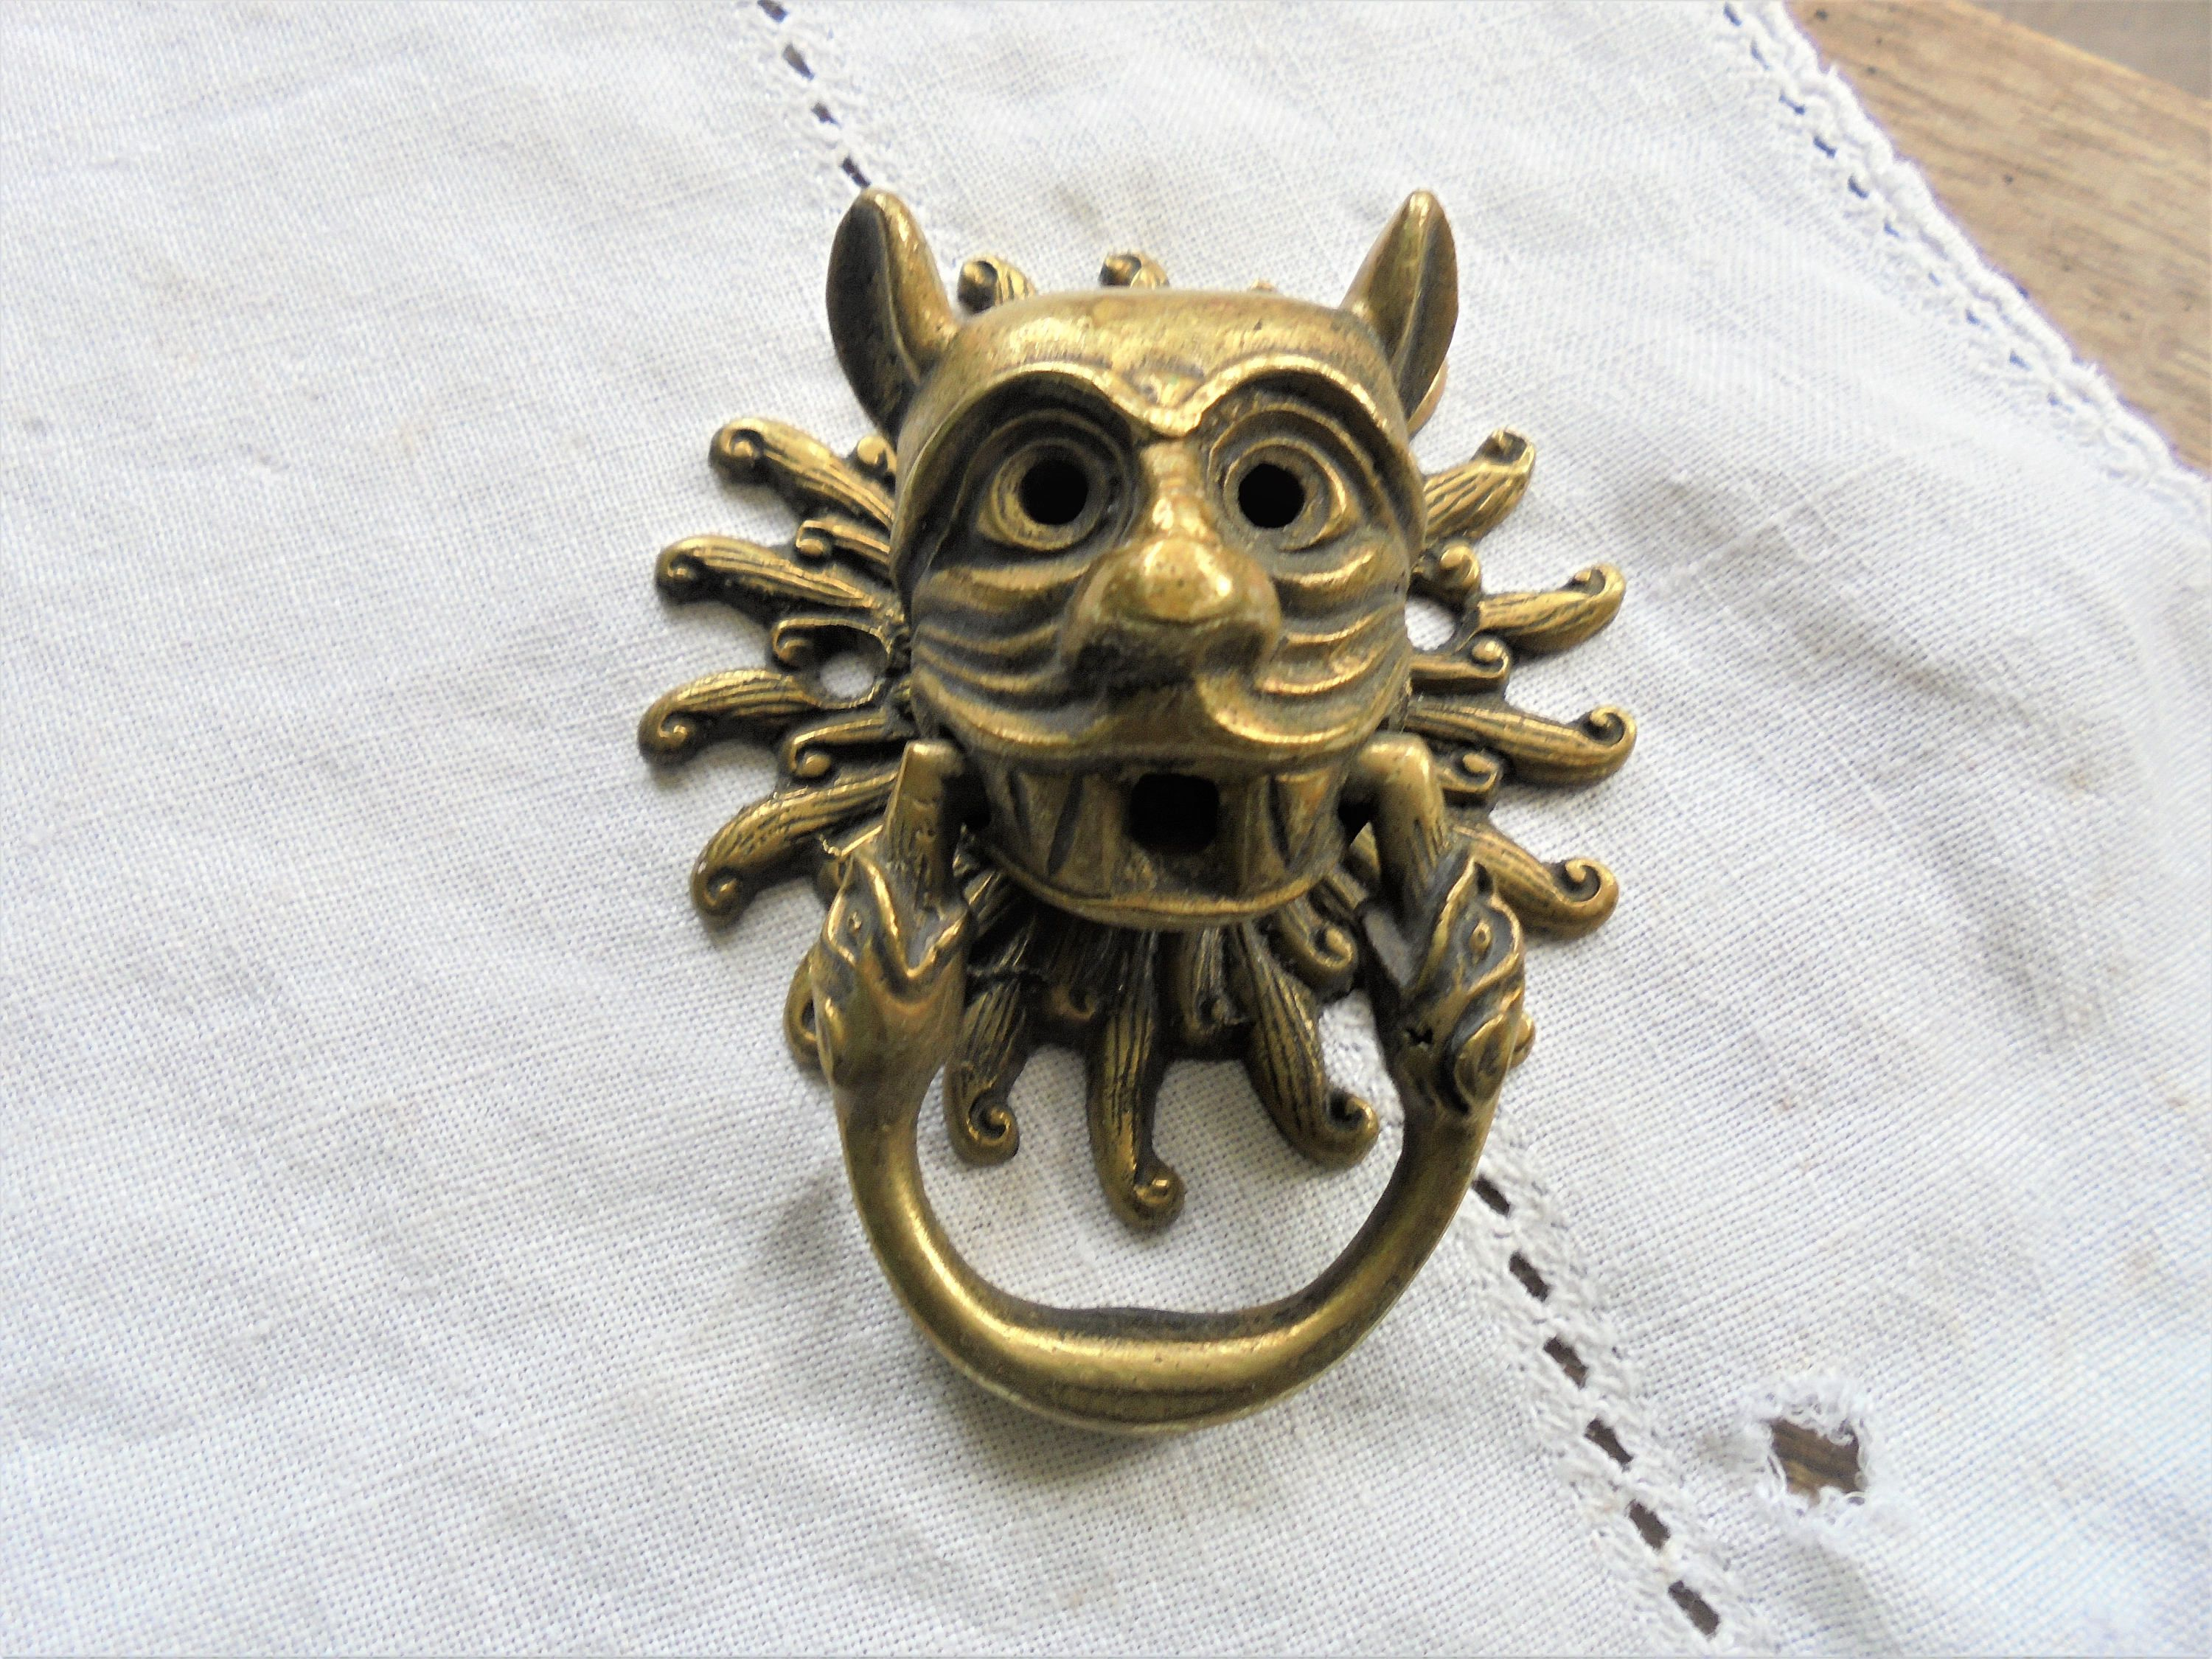 Vintage Face Door Knocker Drawer Pull Gothic Gargoyle Demon Devil Snakes Interesting Antique Br By Imperfetions On Etsy